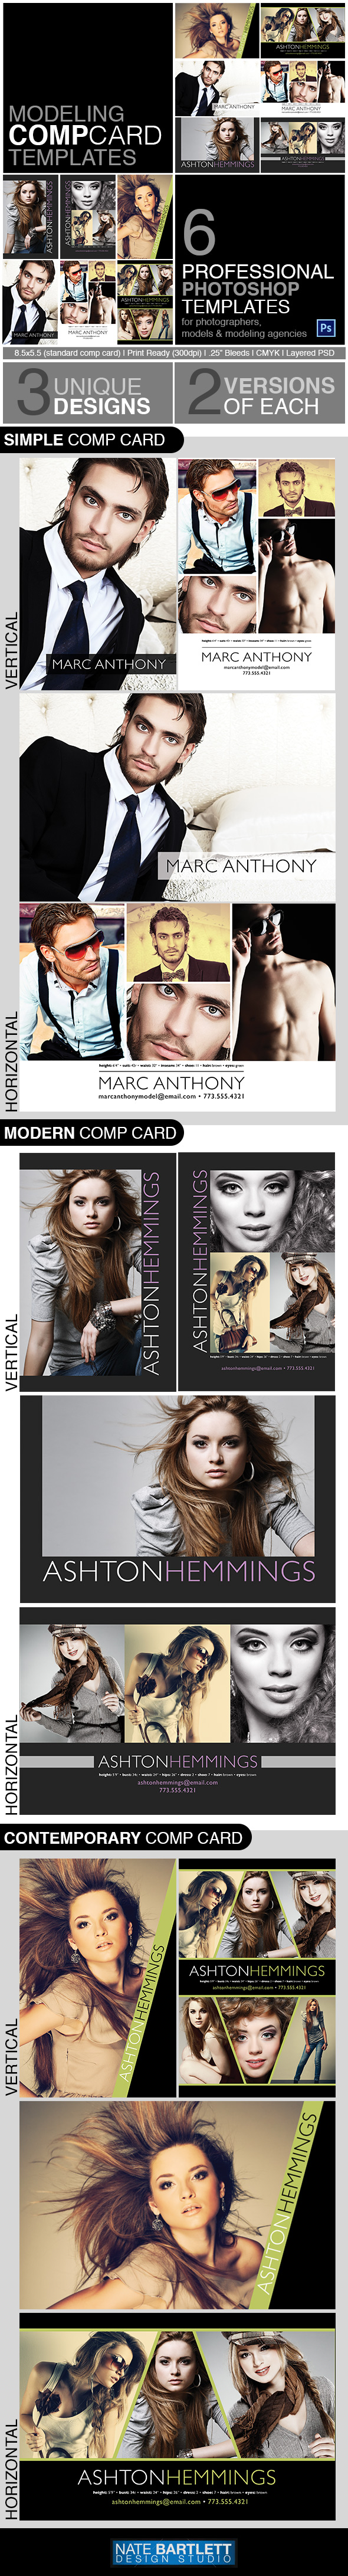 free model comp card template psd - model comp card template kit preview by natebelow0 on